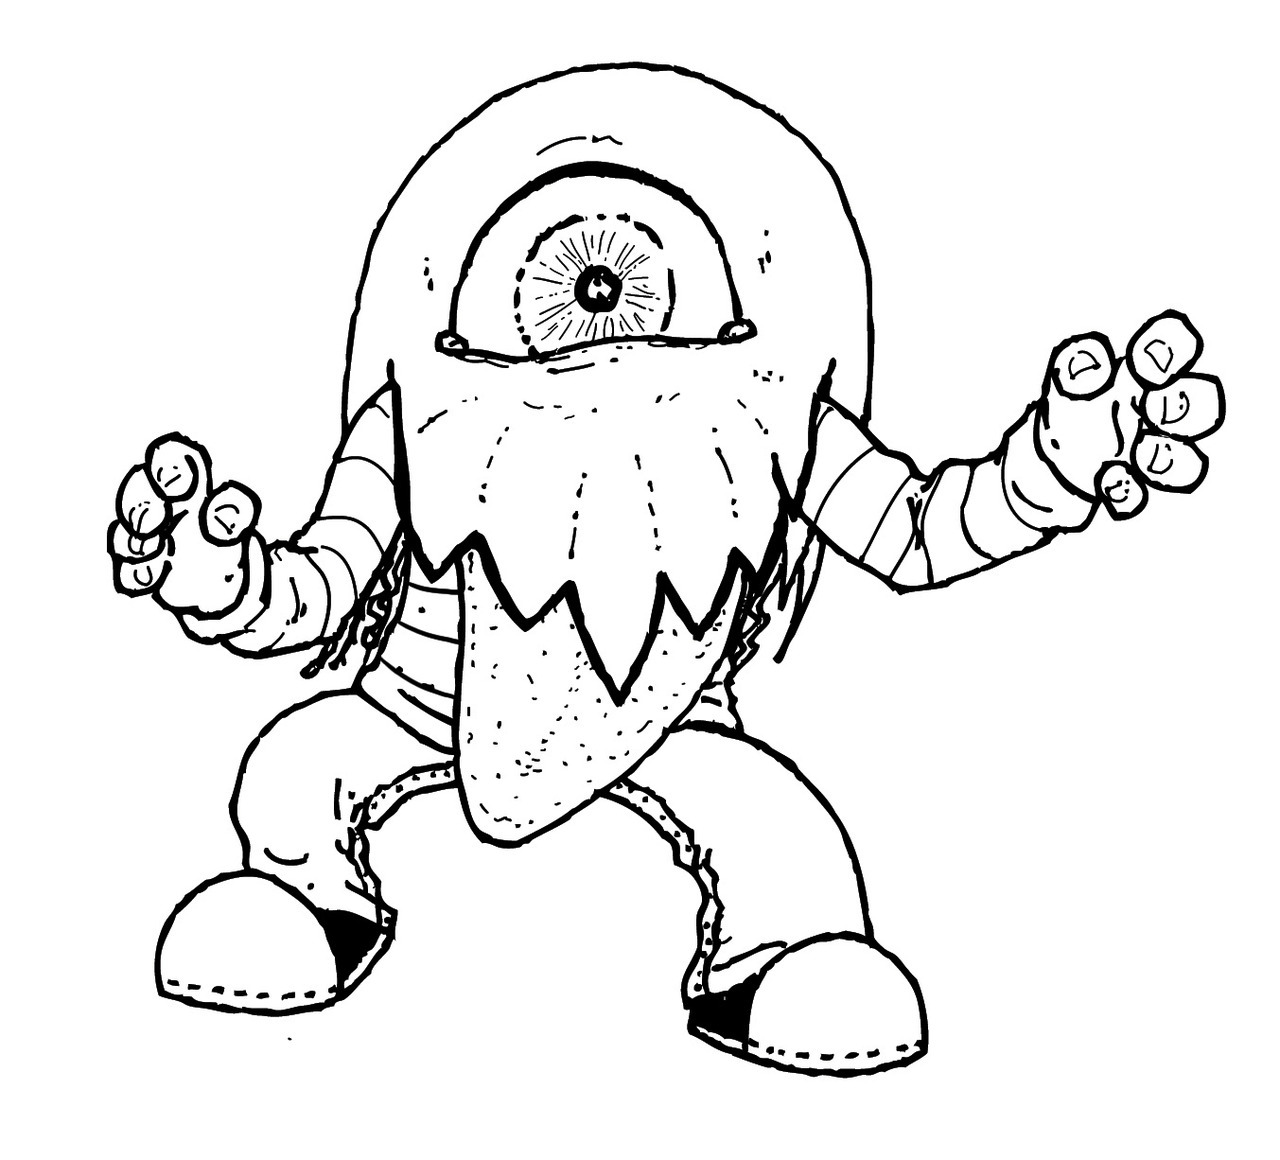 Monster concept for a children's book #3.  Original art and writing © Jasey Crowl 2012